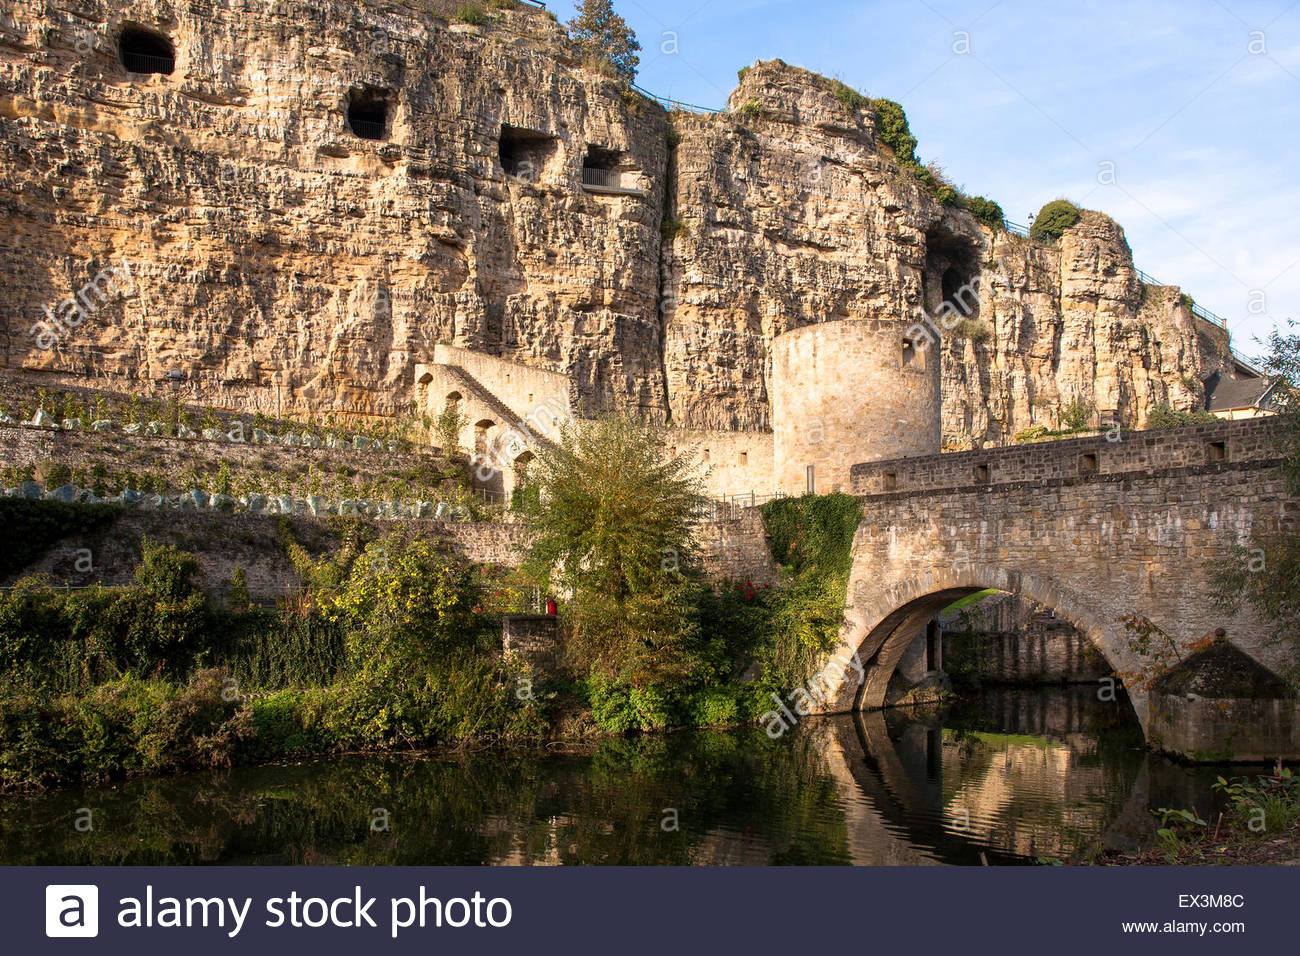 Bock Casemates Luxembourg City, LUX, Luxembourg, city of Luxembourg, the Bock casemates and the ...